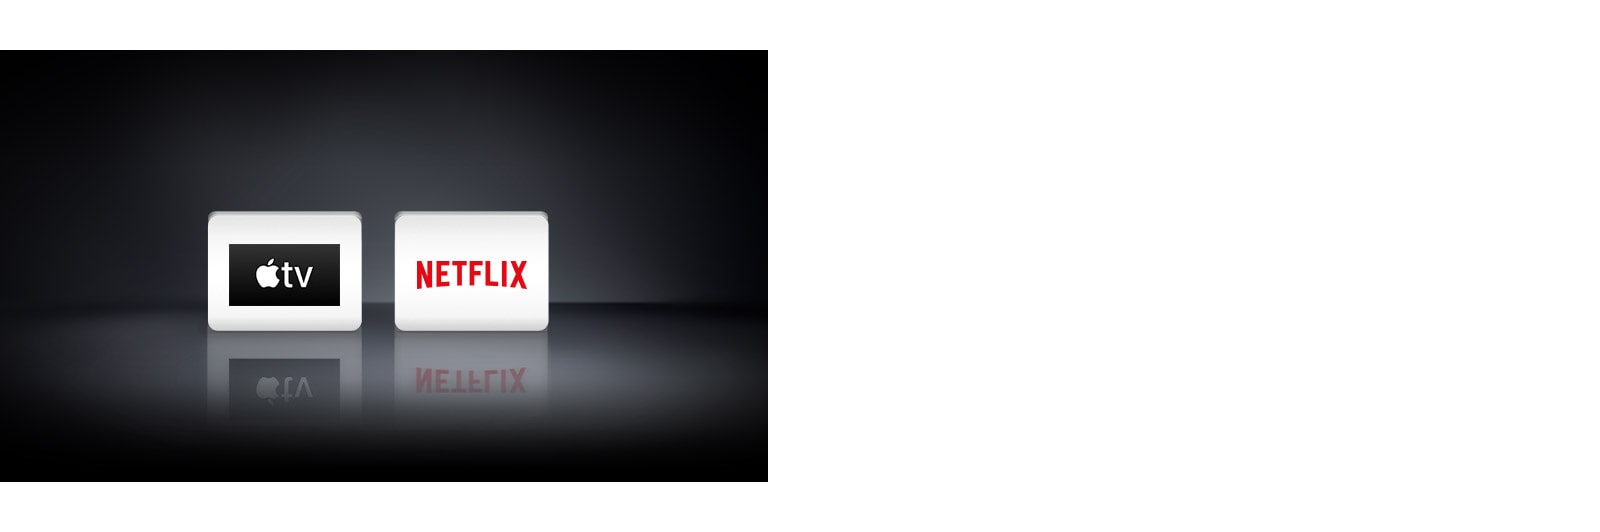 Two app logos shown from left to right: Apple TV and Netflix.